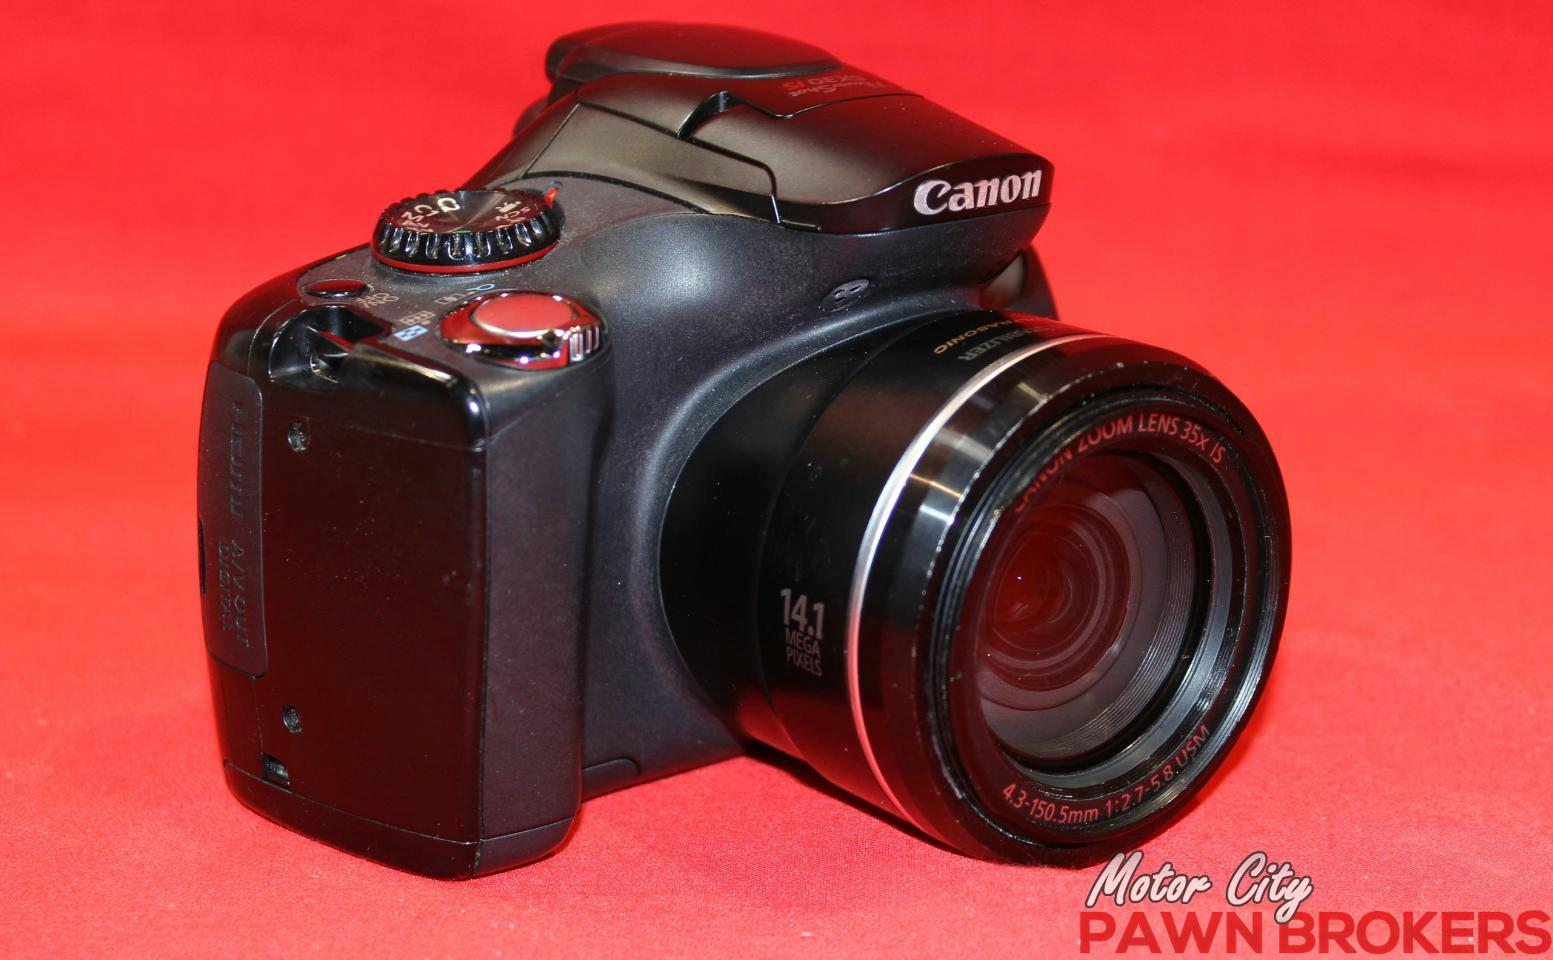 Canon Pc1560 Sx30 Is 14 1mp 35x Zoom 2 7 Display